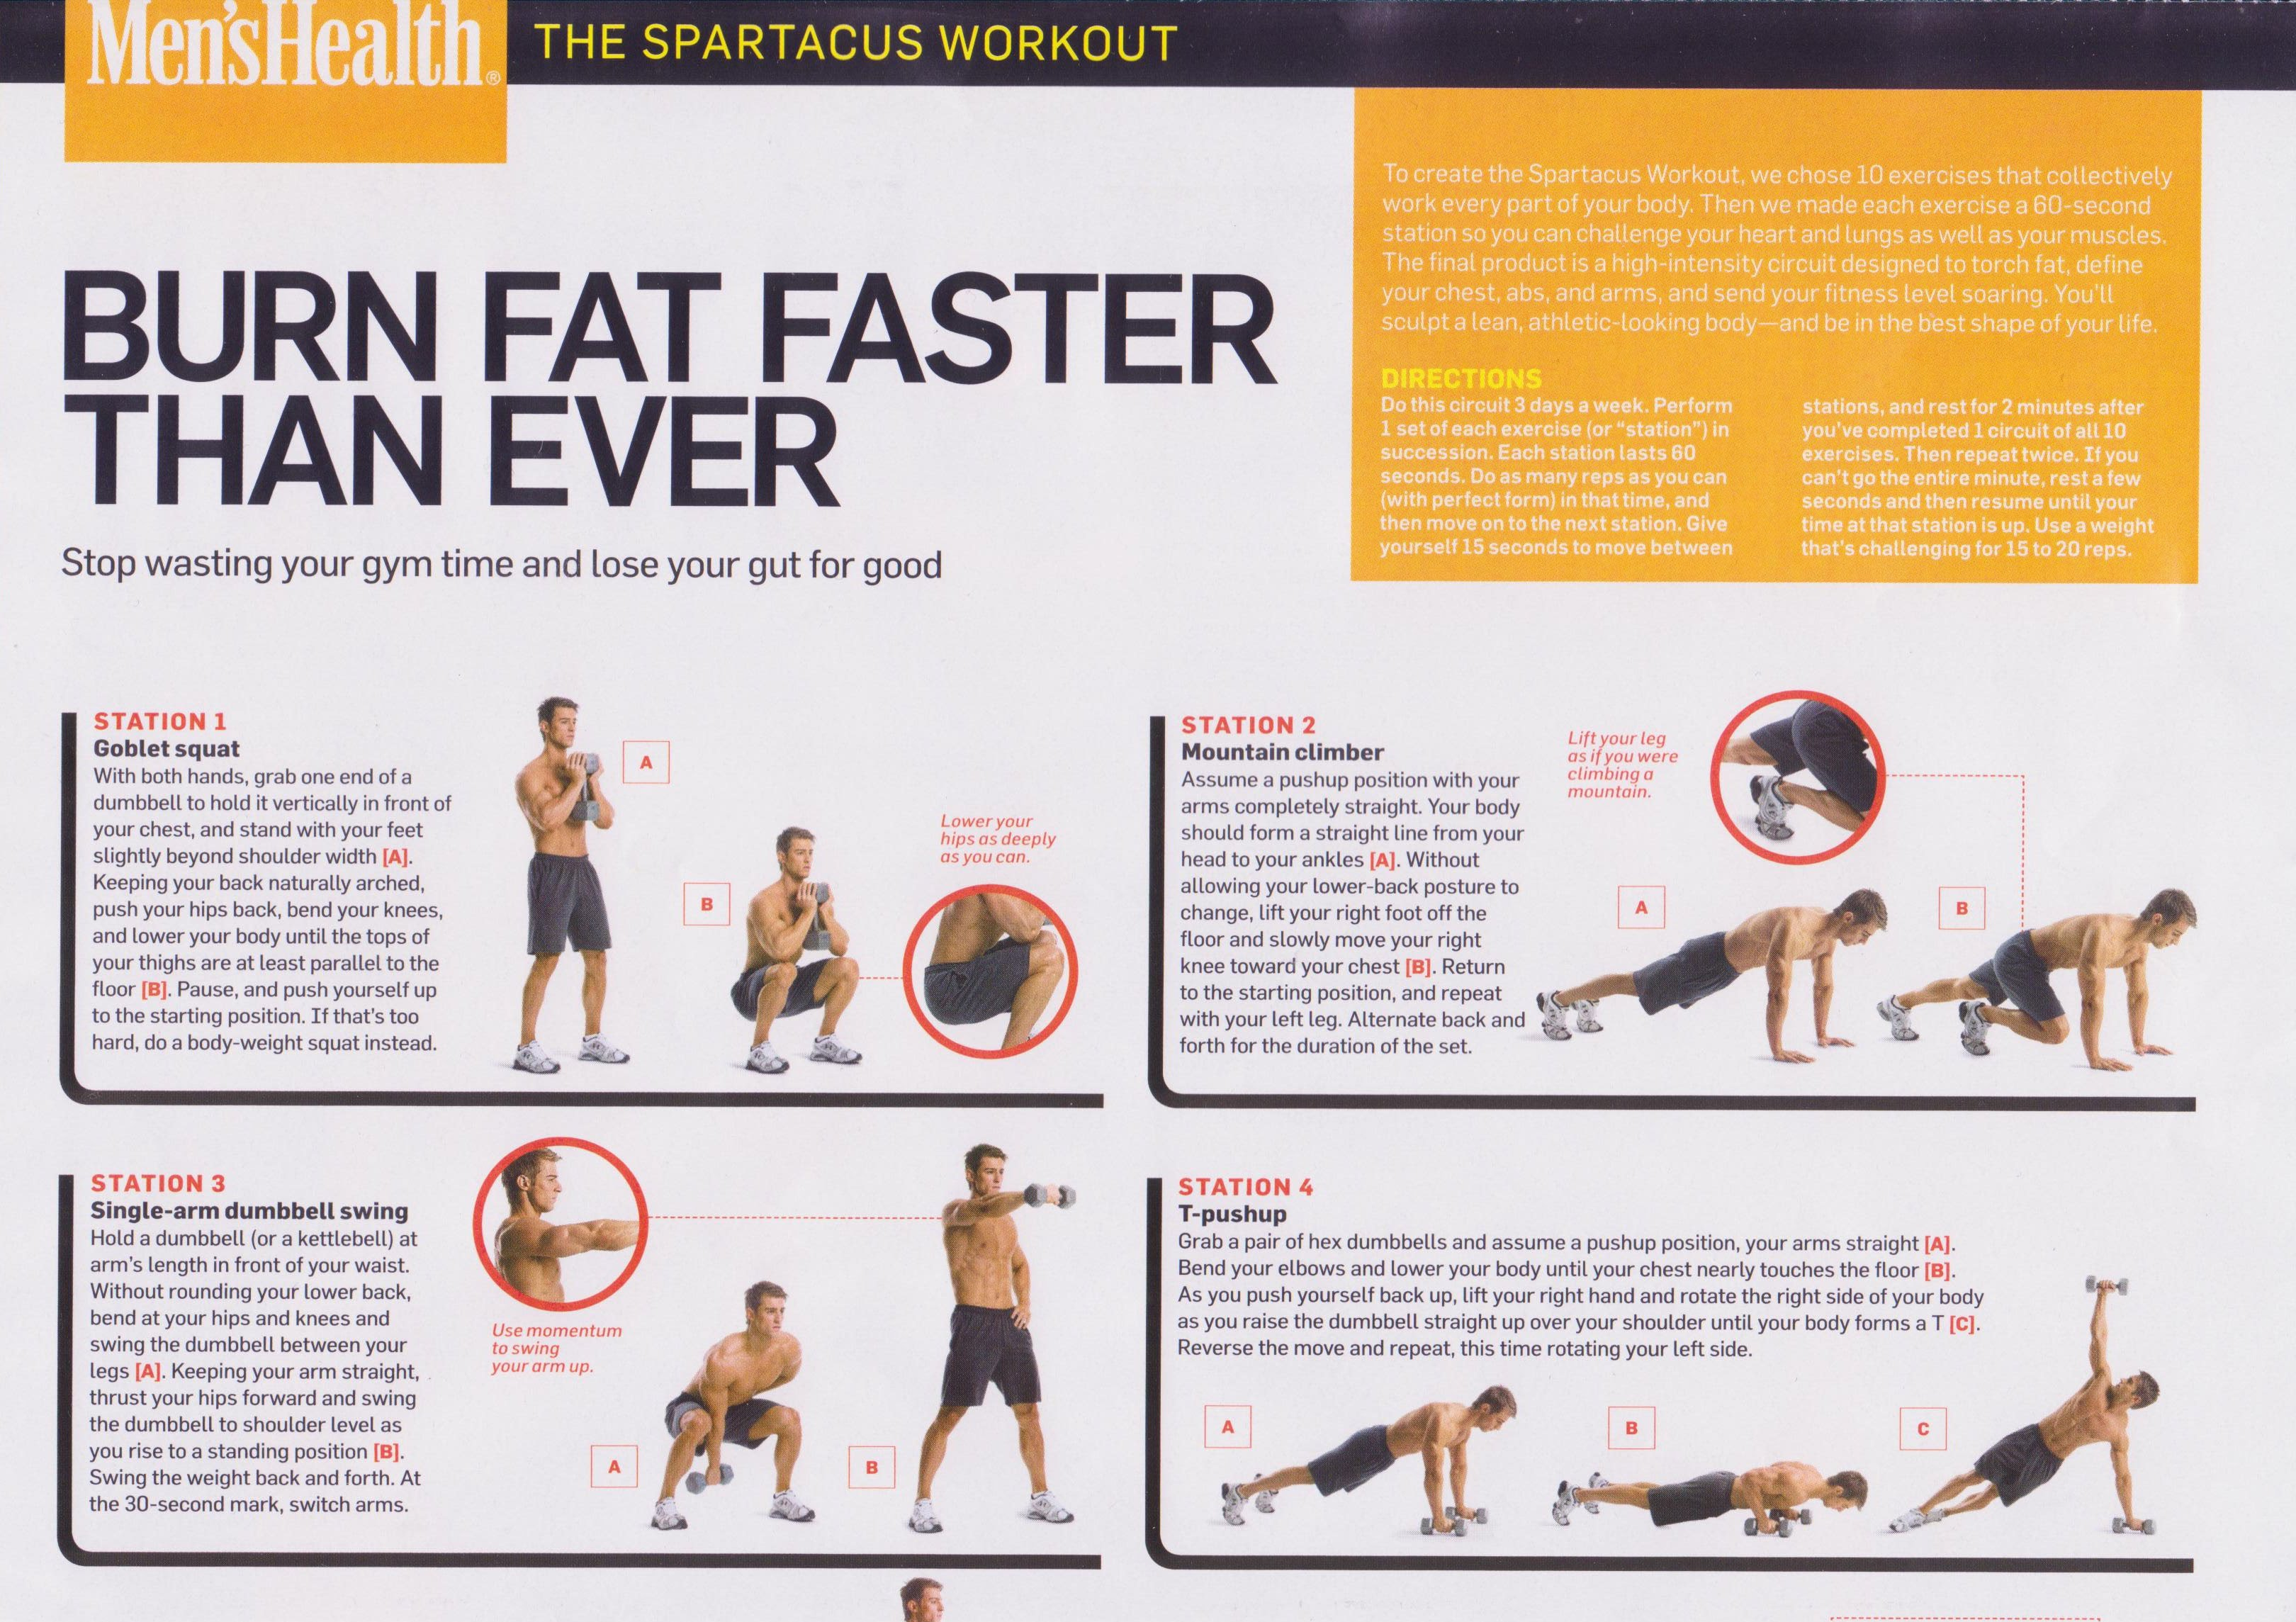 graphic about Spartacus Workout Printable named The Spartacus Difficulty -